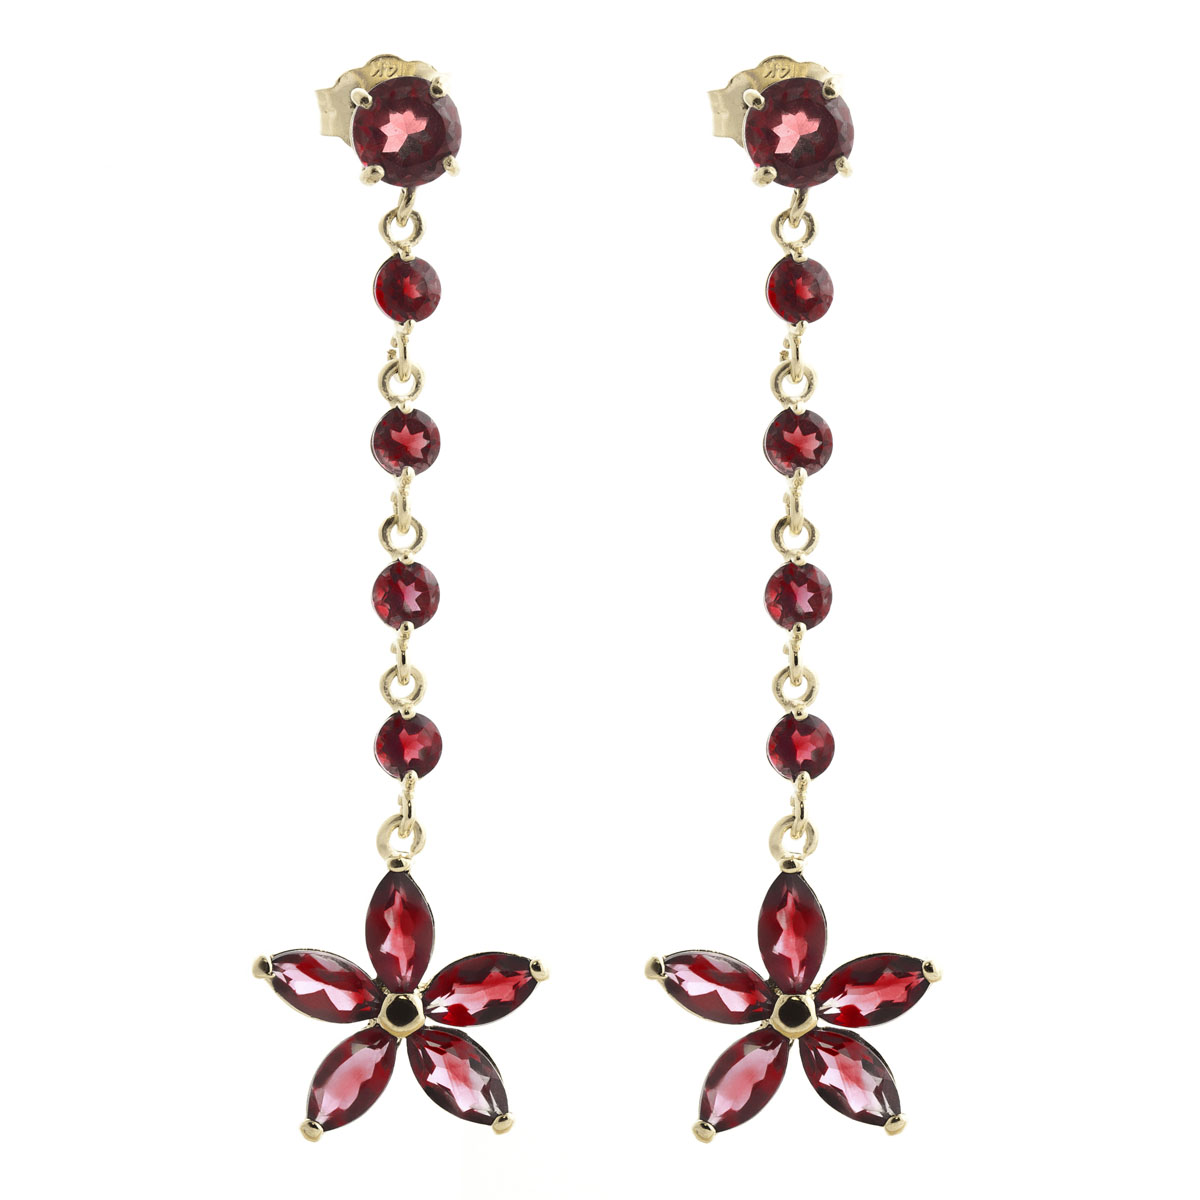 Garnet Daisy Chain Drop Earrings 4.8 ctw in 9ct Gold